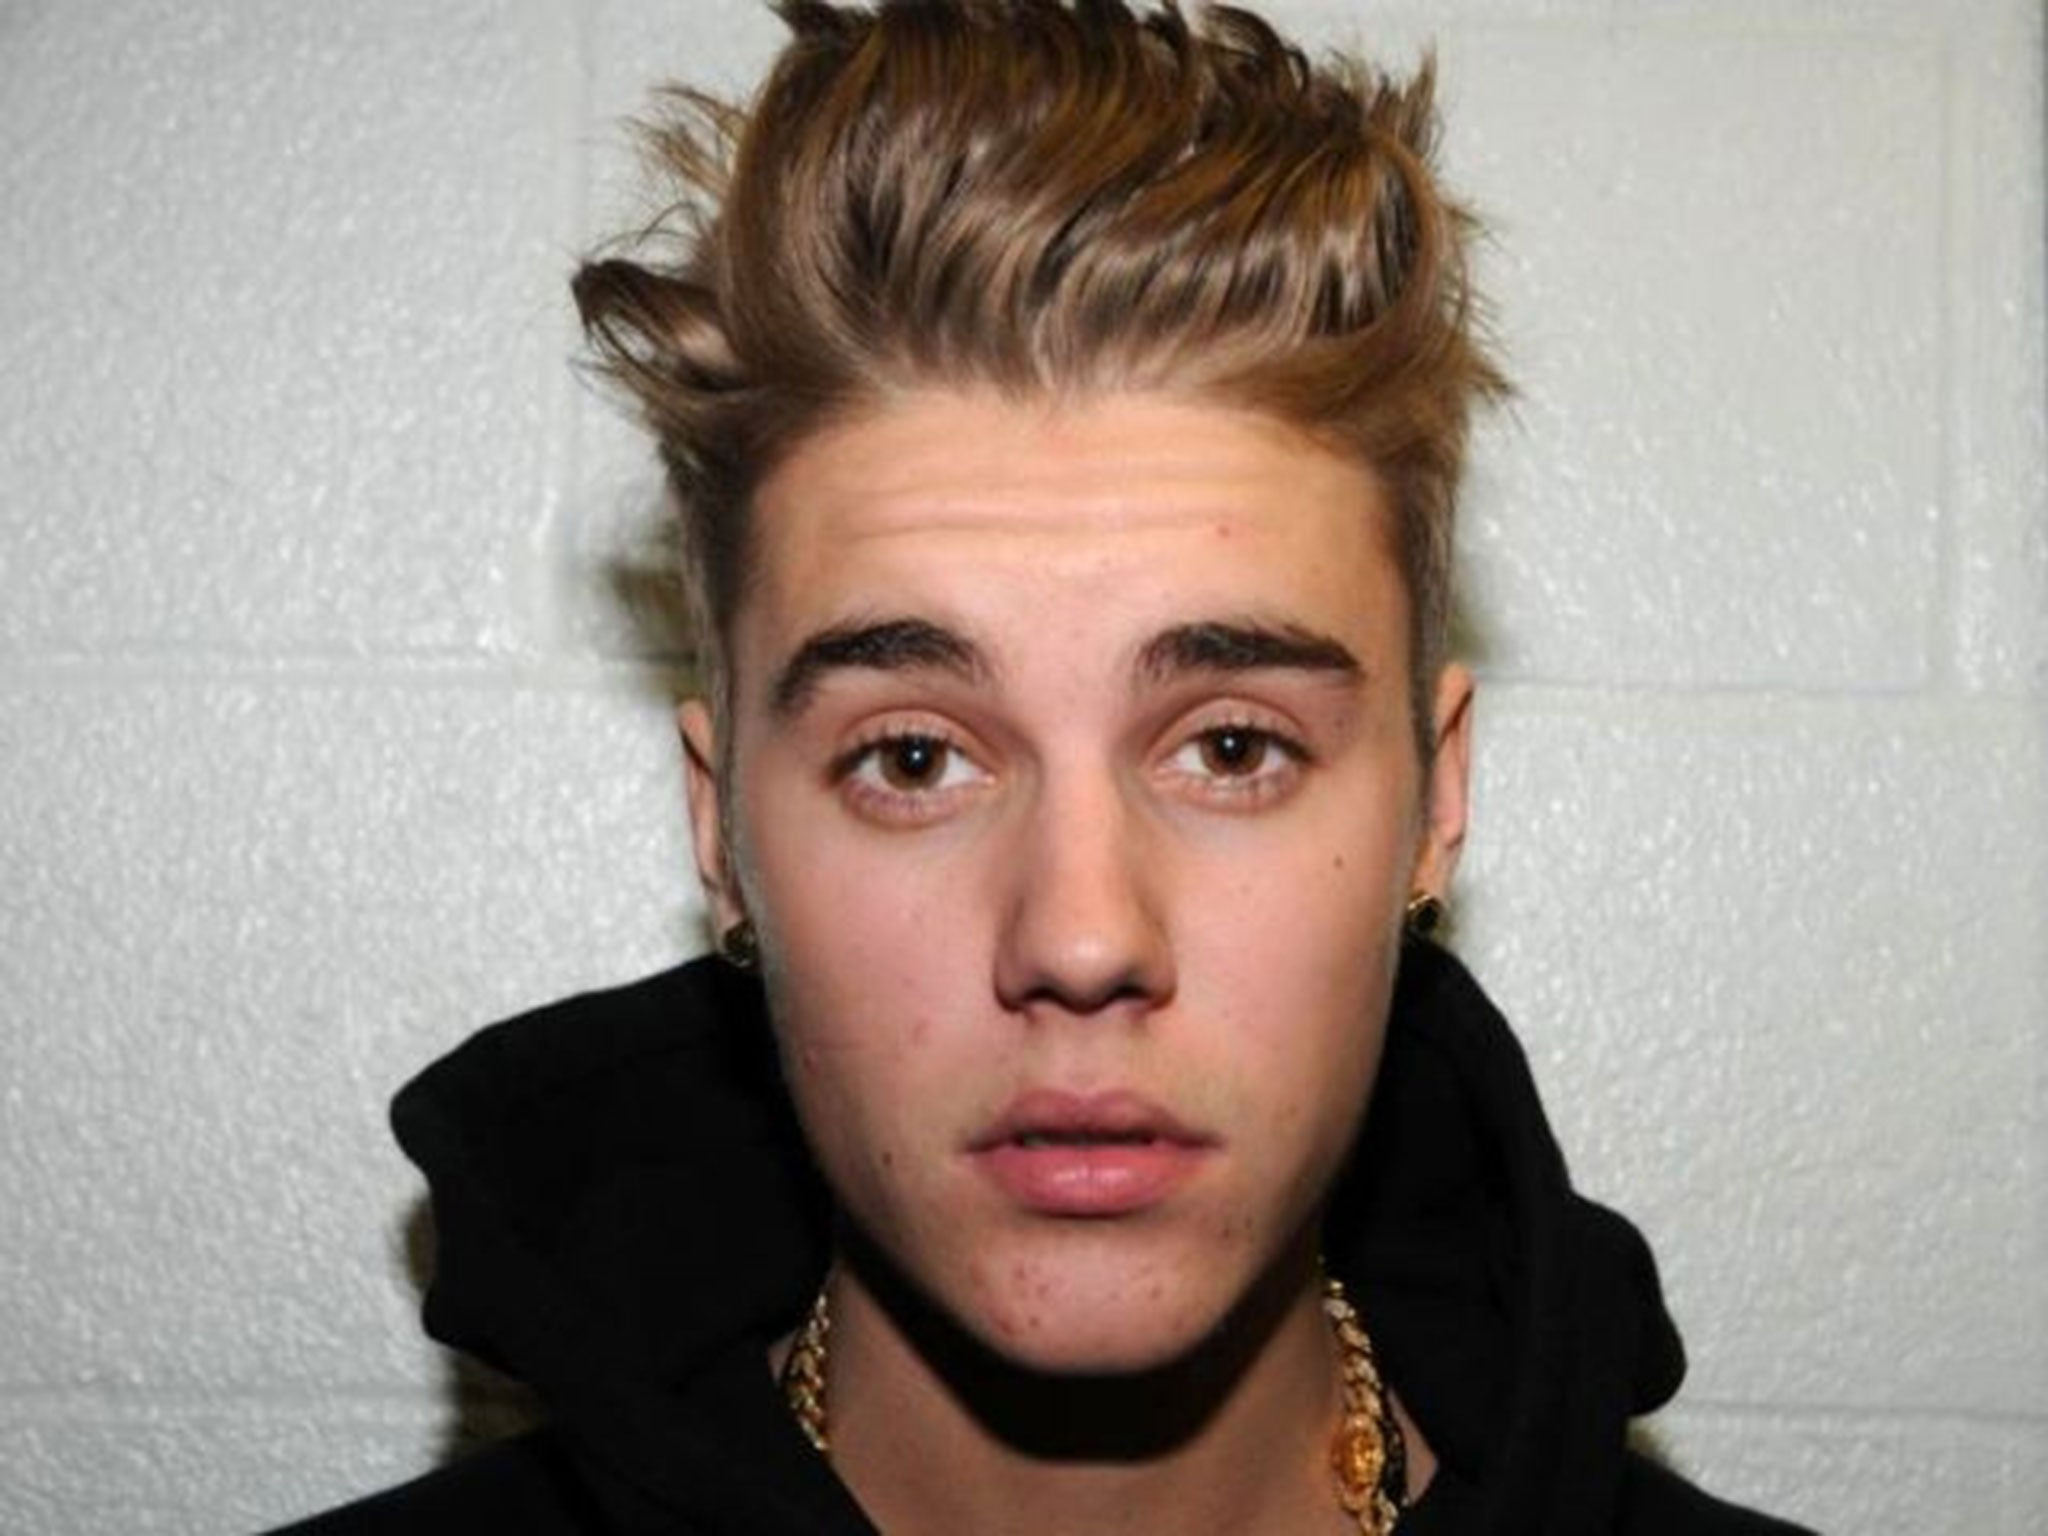 Justin Bieber's Penis Has Held A Mirror Up To Our Alarming Double Standards  On Privacy The